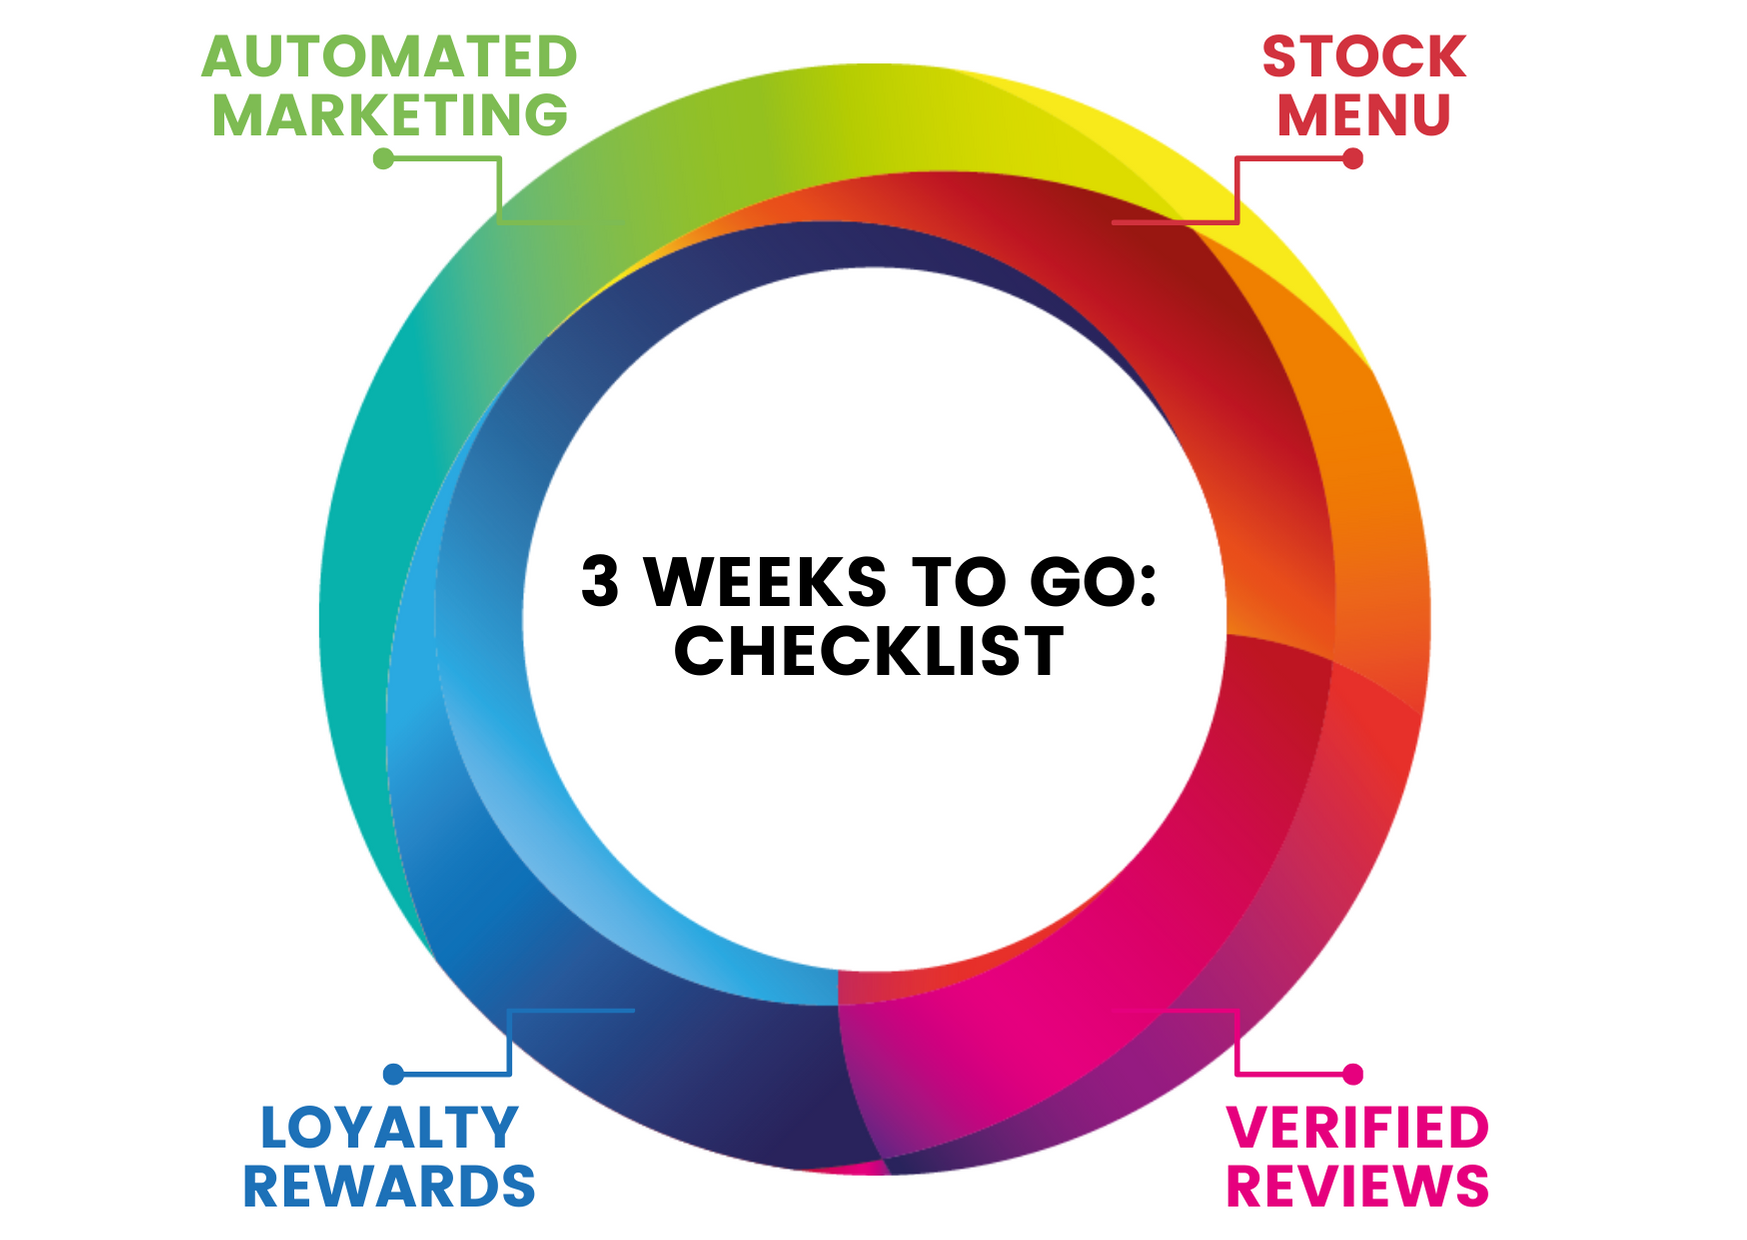 3 weeks to go: Software checklist for reopening